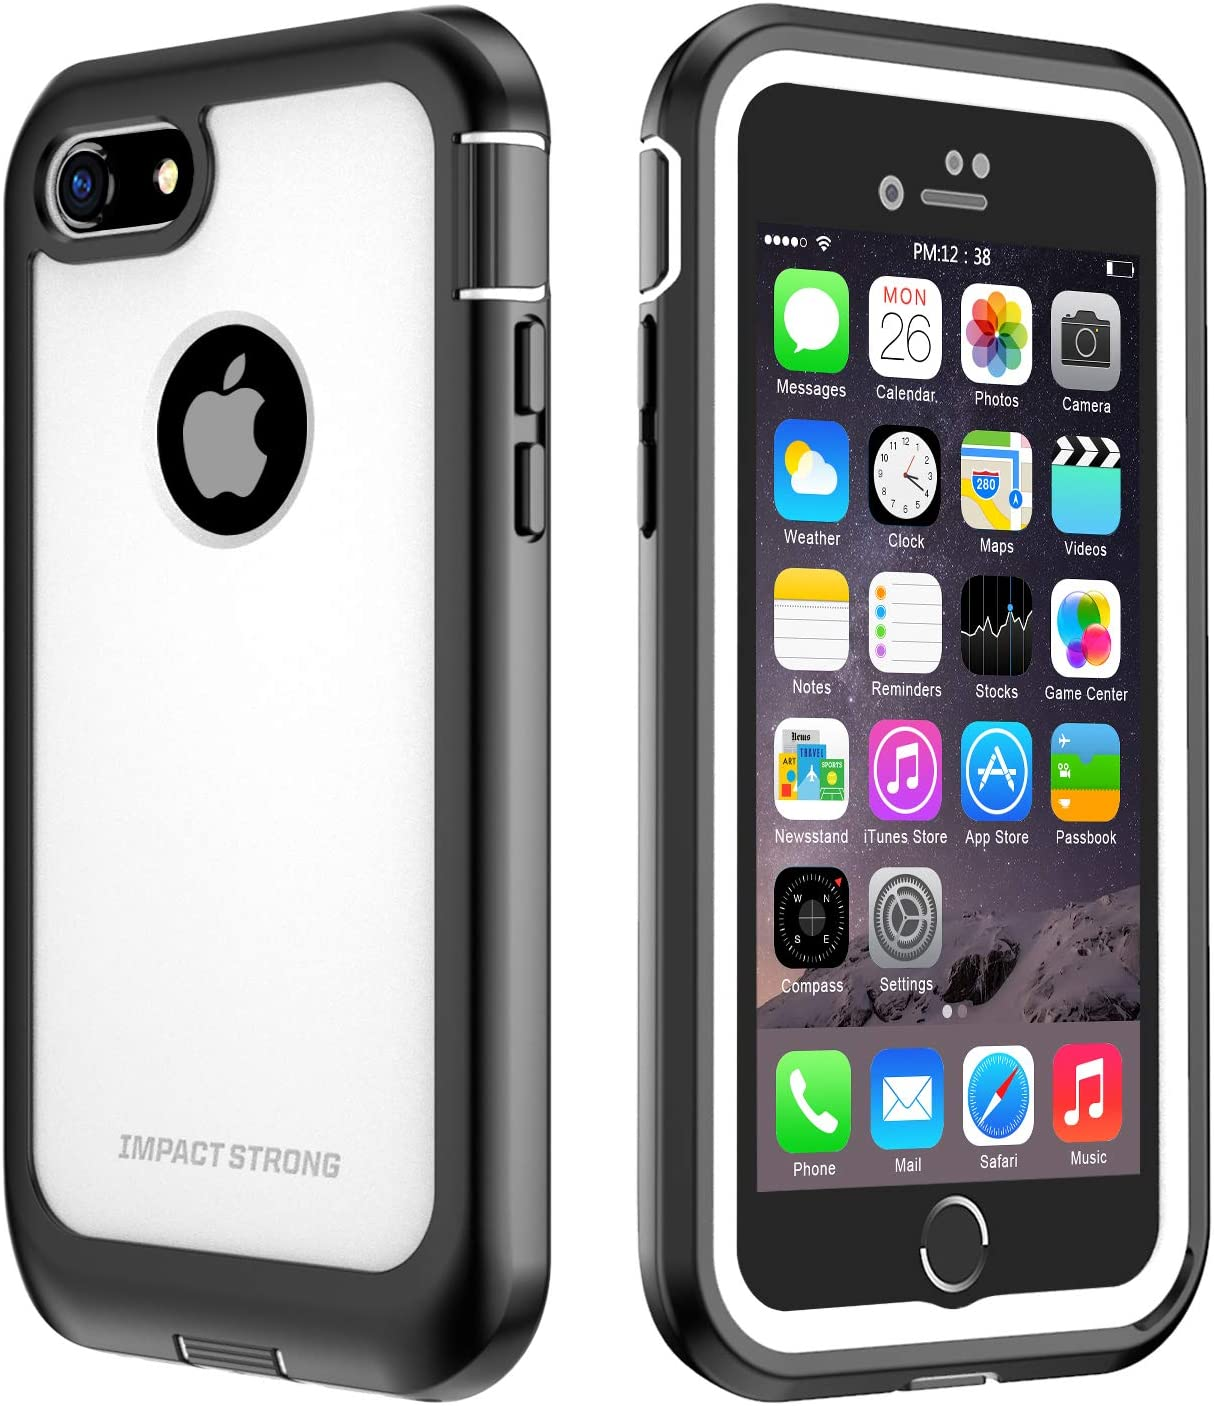 ImpactStrong iPhone 7/8 Case, Ultra Protective Case with Built-in Clear Screen Protector Full Body Cover for iPhone 7 2016 /iPhone 8 2017 (White)